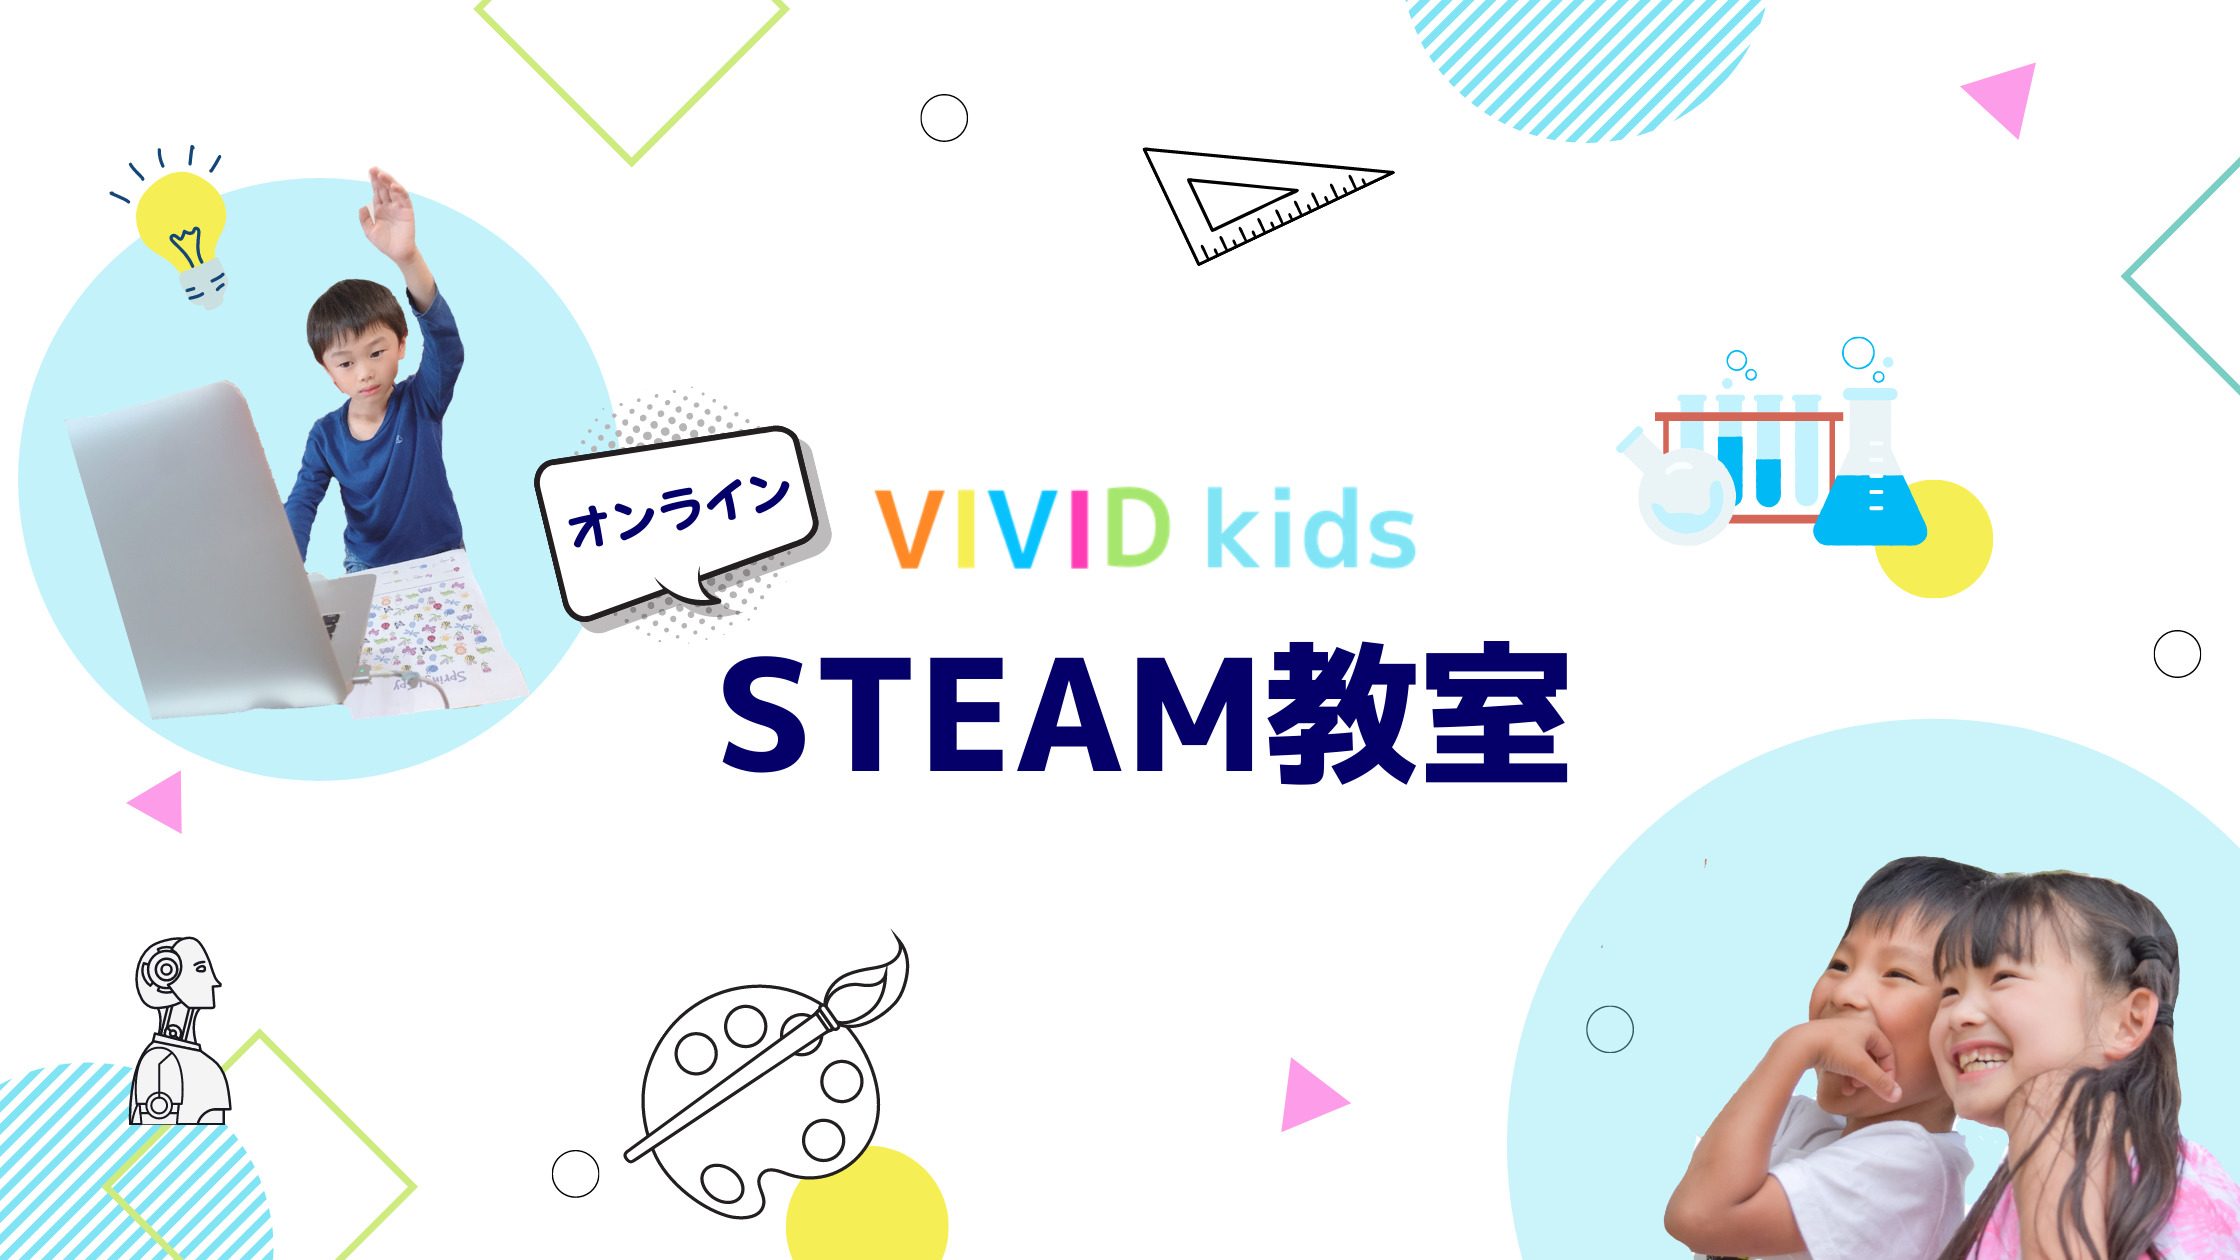 VIVID kids STEAM教室